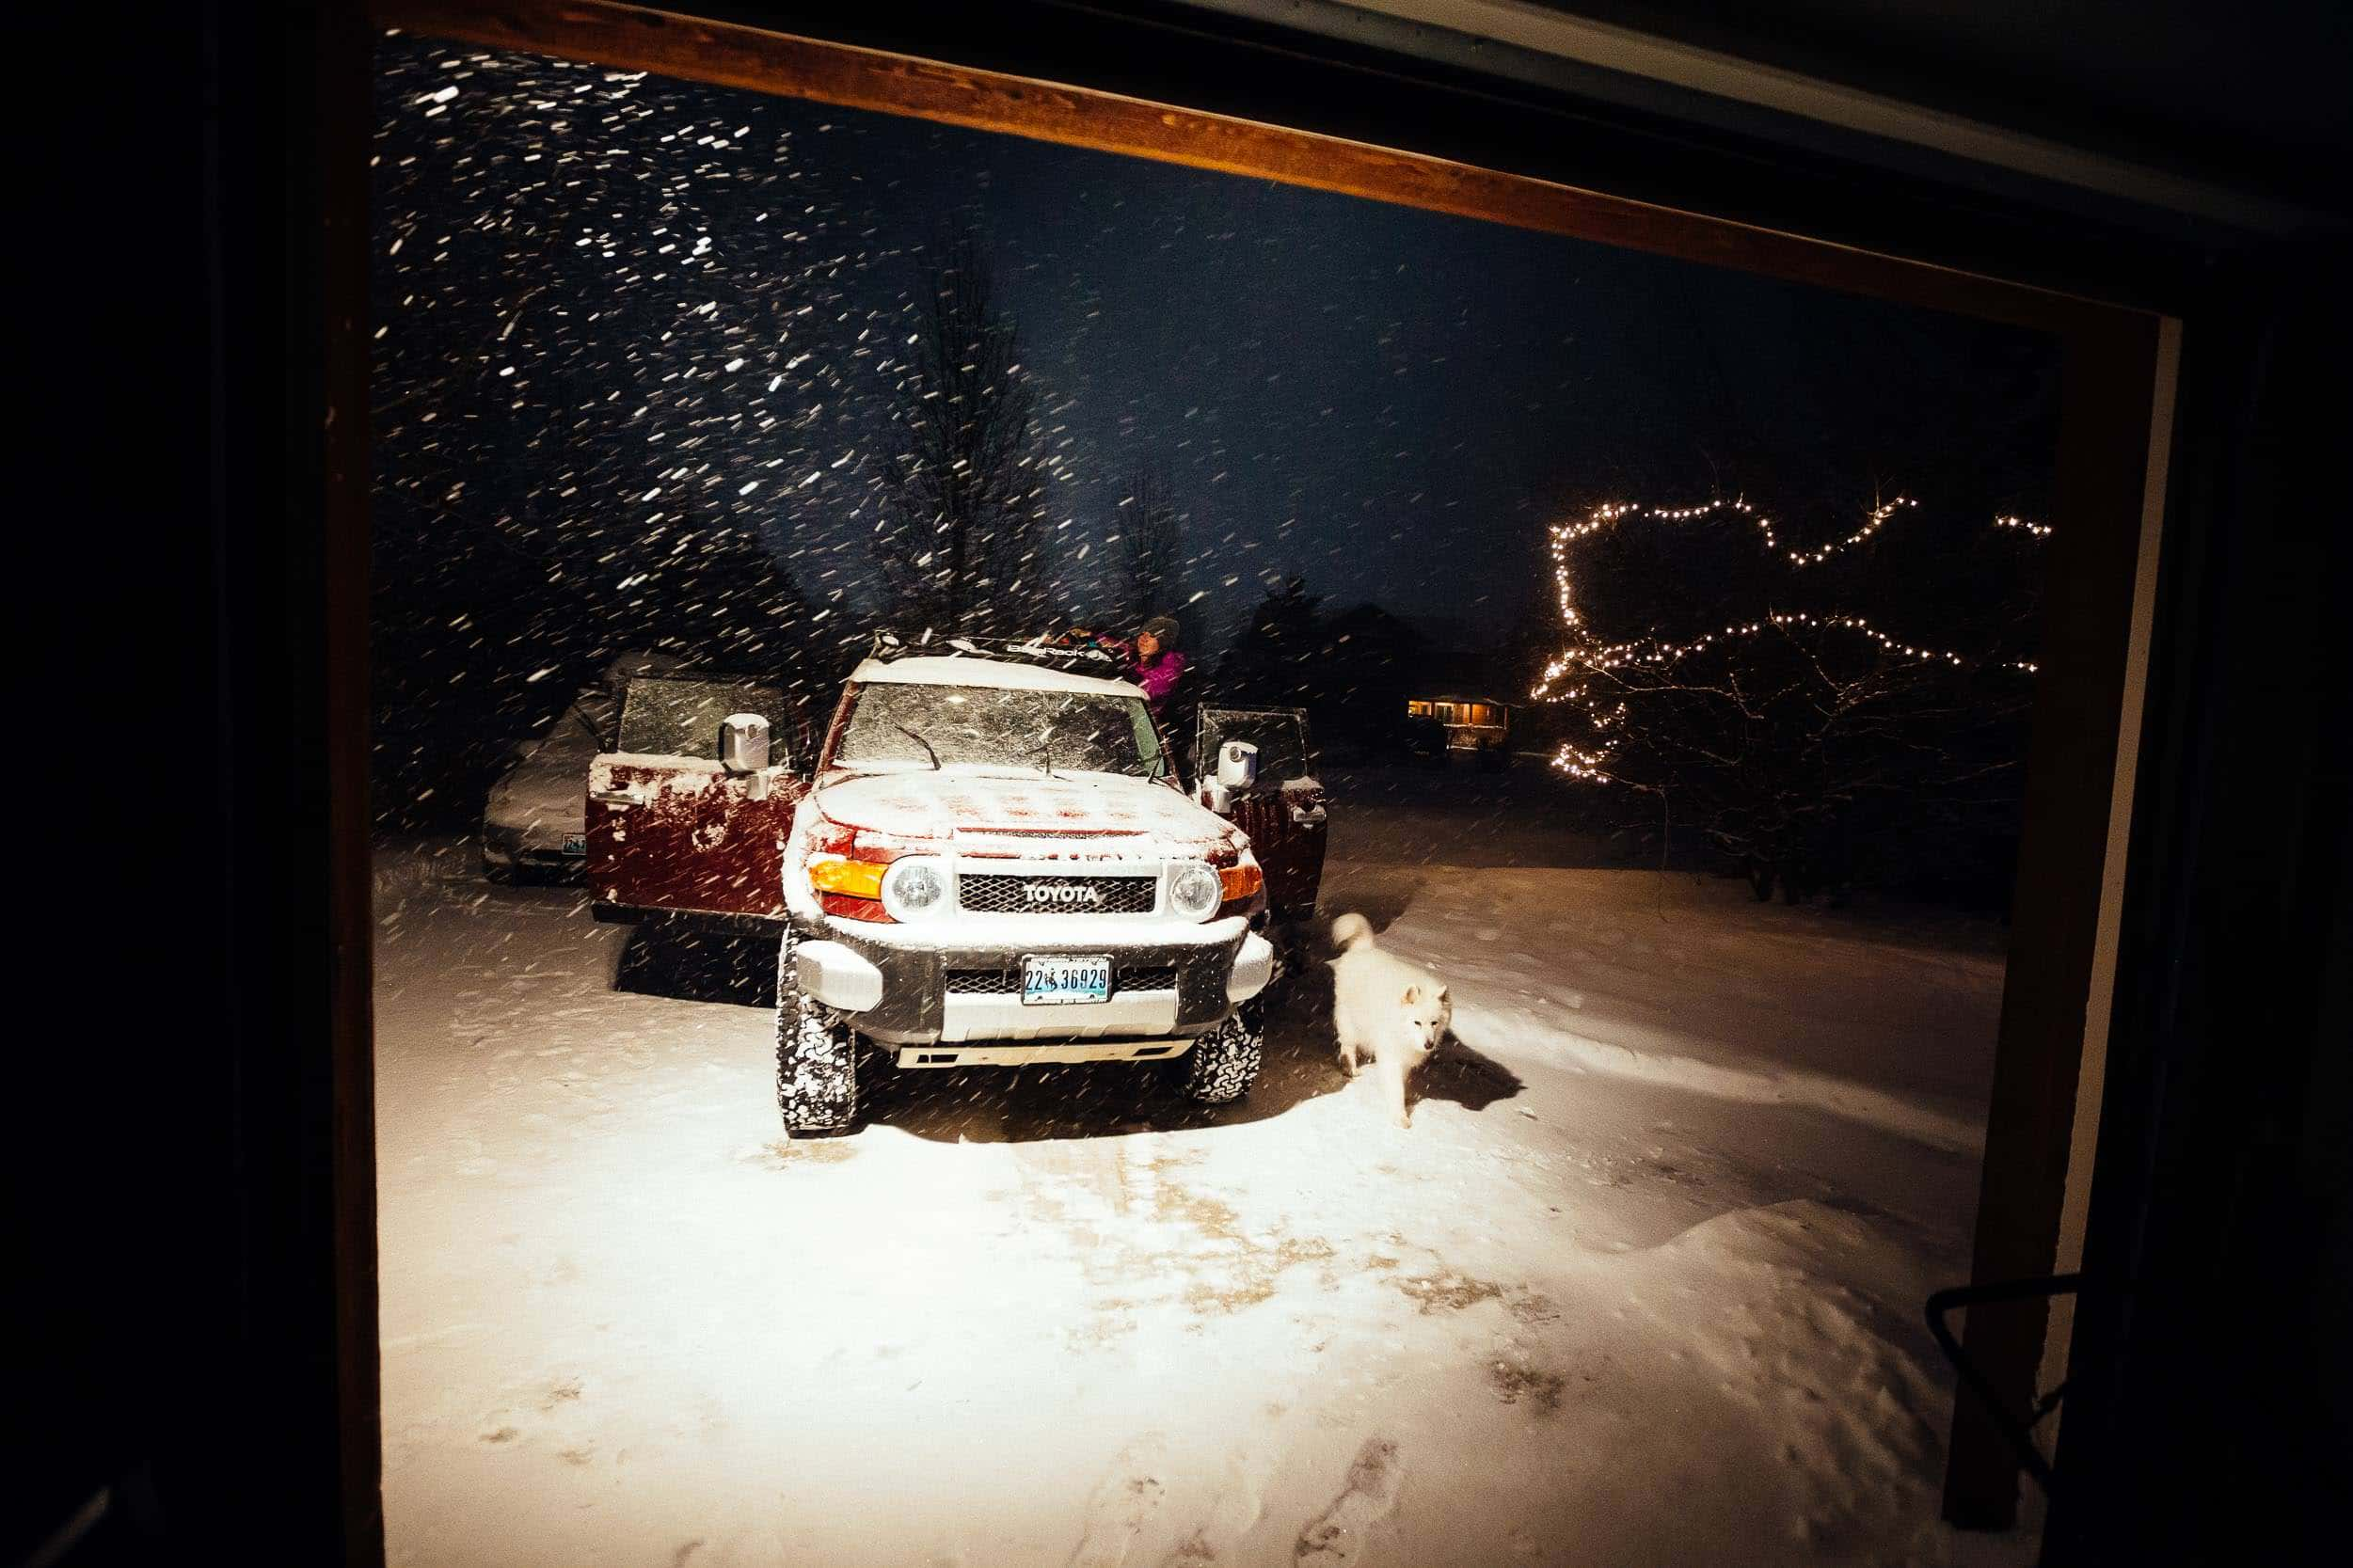 Heather Goodrich unloads skis off of the roof of the FJ Cruiser after a day of powder skiing at Christmas